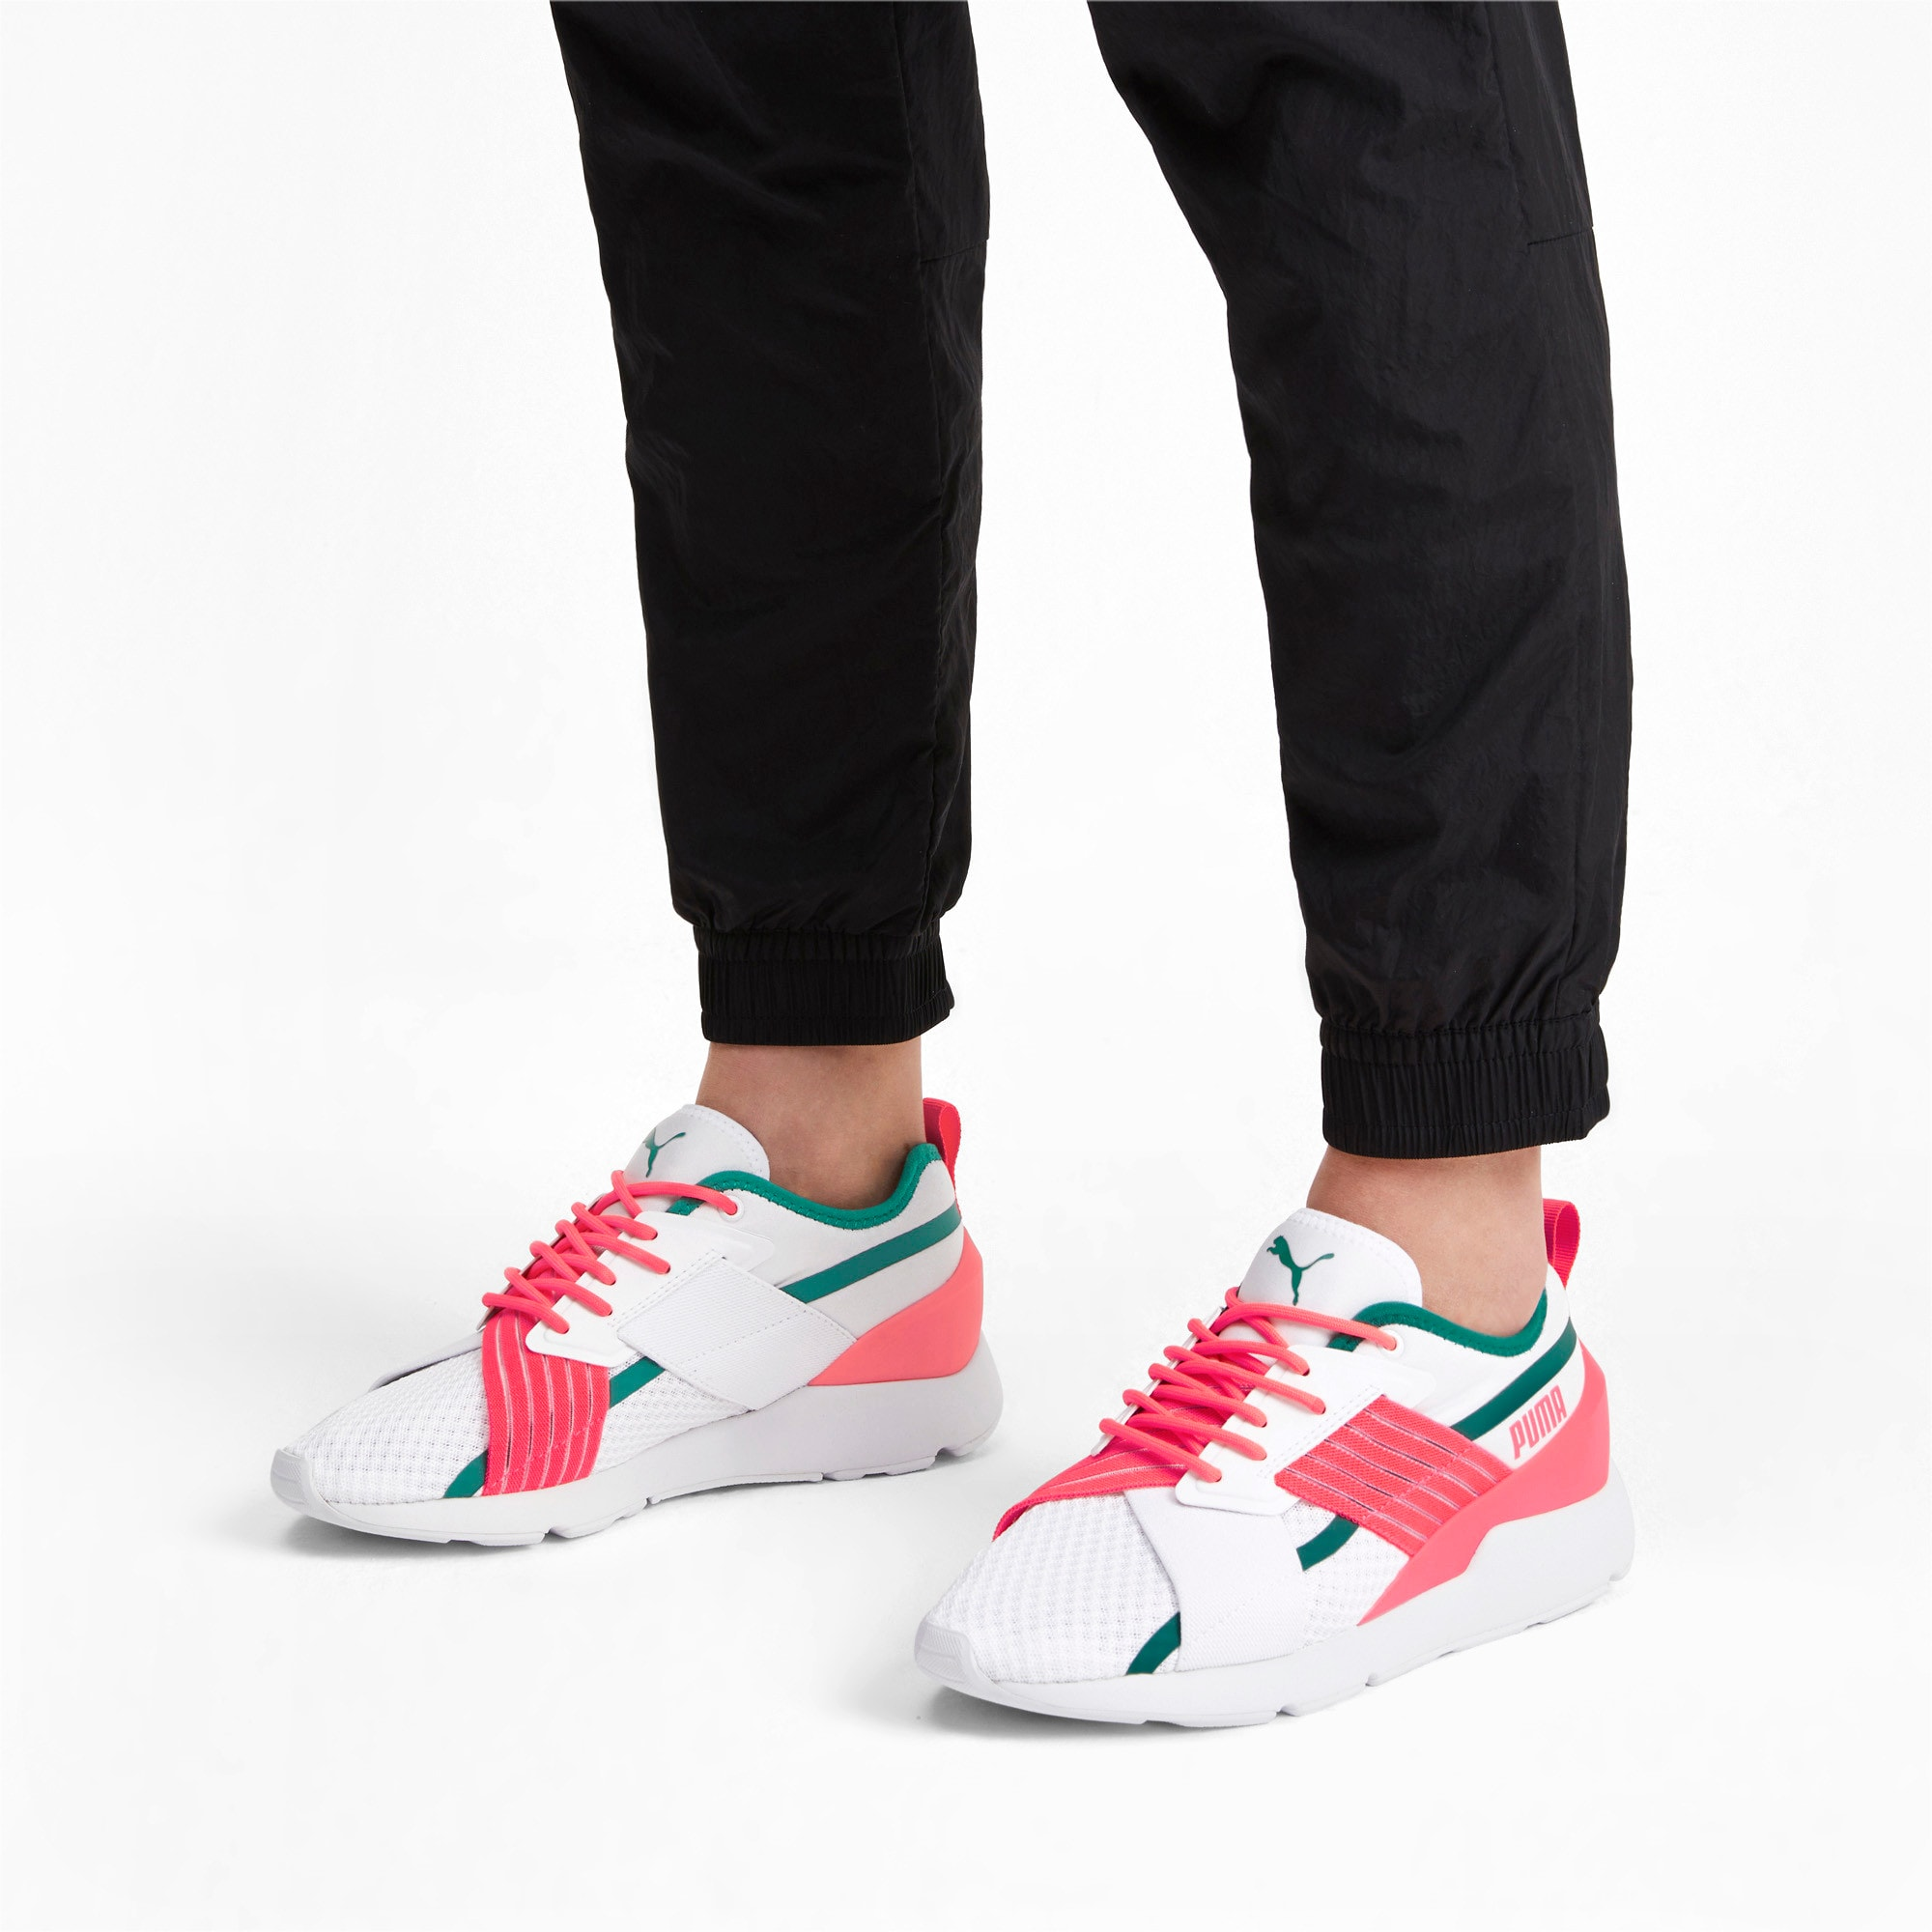 Thumbnail 2 of Muse X-2 Damen Sneaker, Puma White-Pink Alert, medium